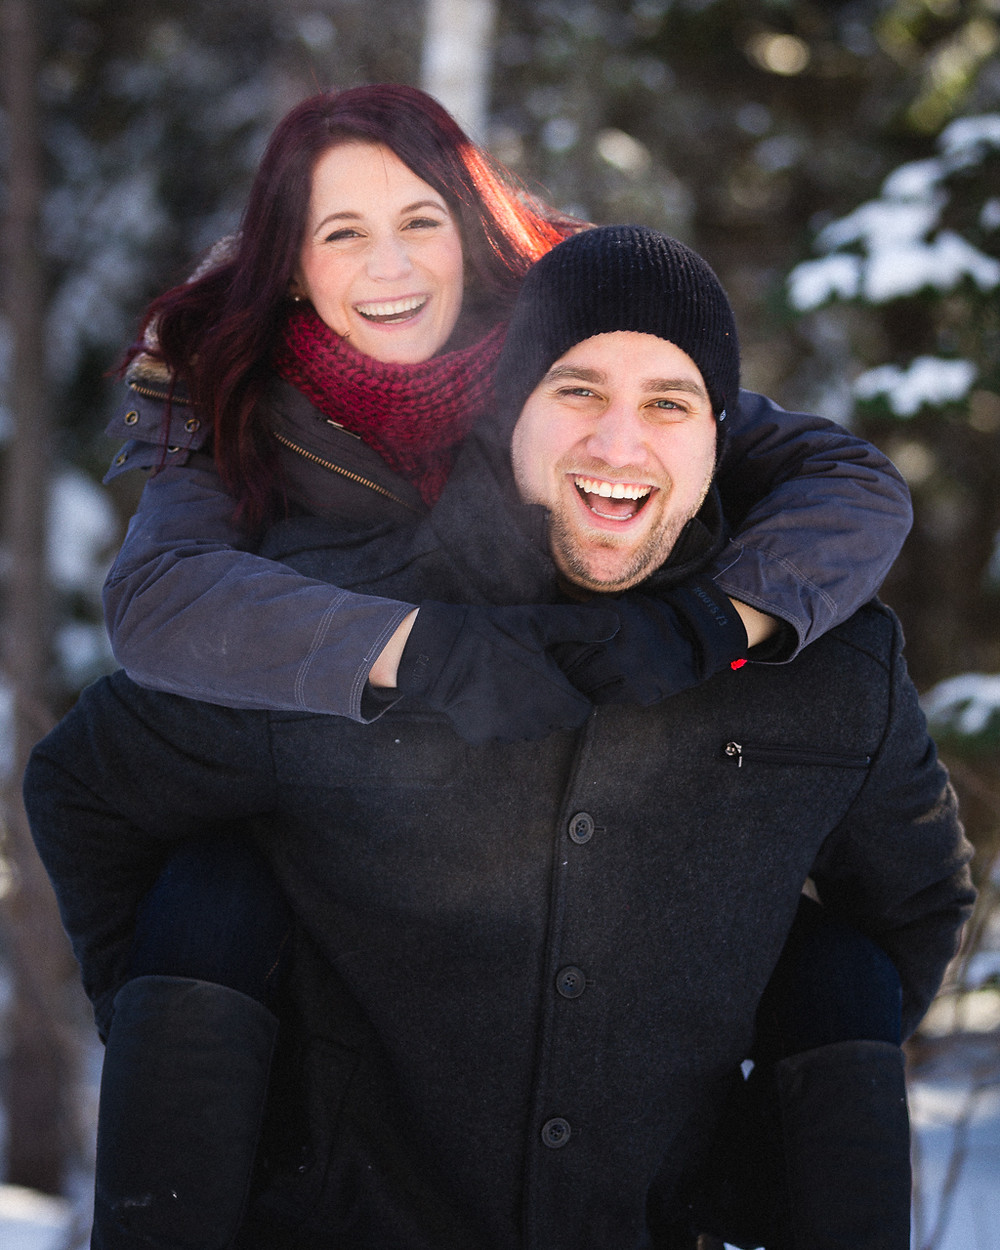 A happy couple in a wooded area, in winter.